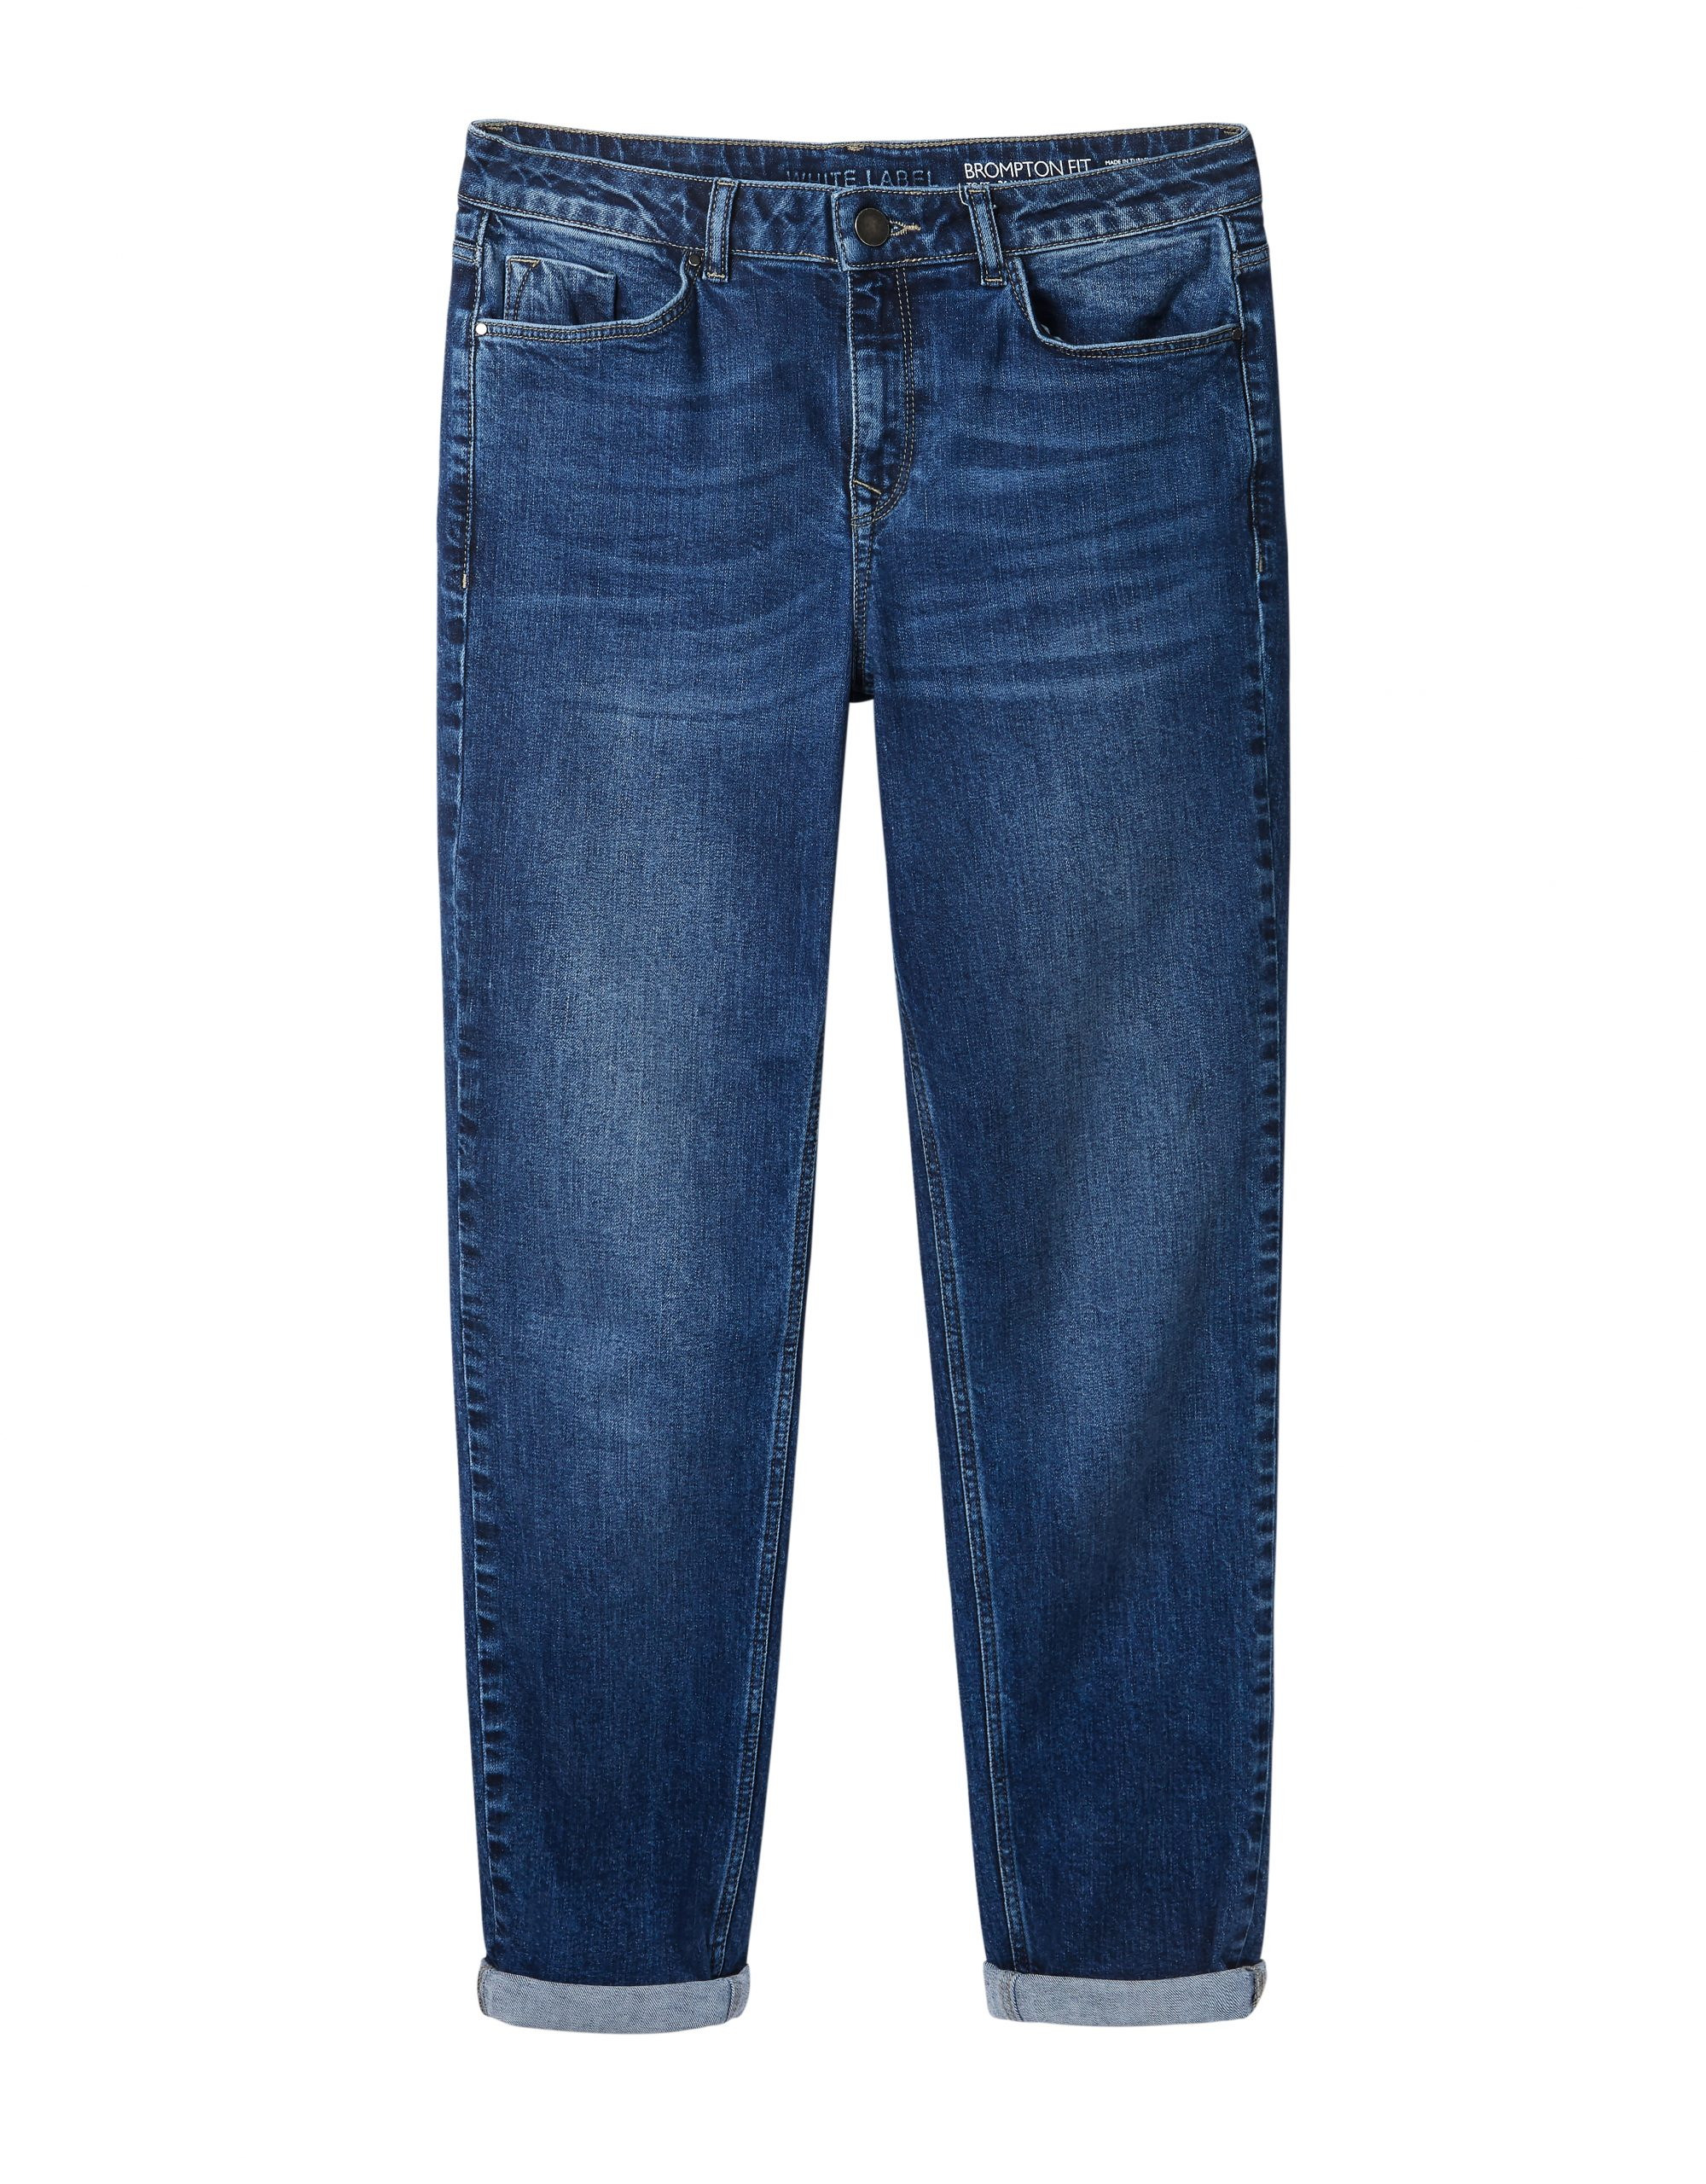 brompton boyfriend jeans by the white company